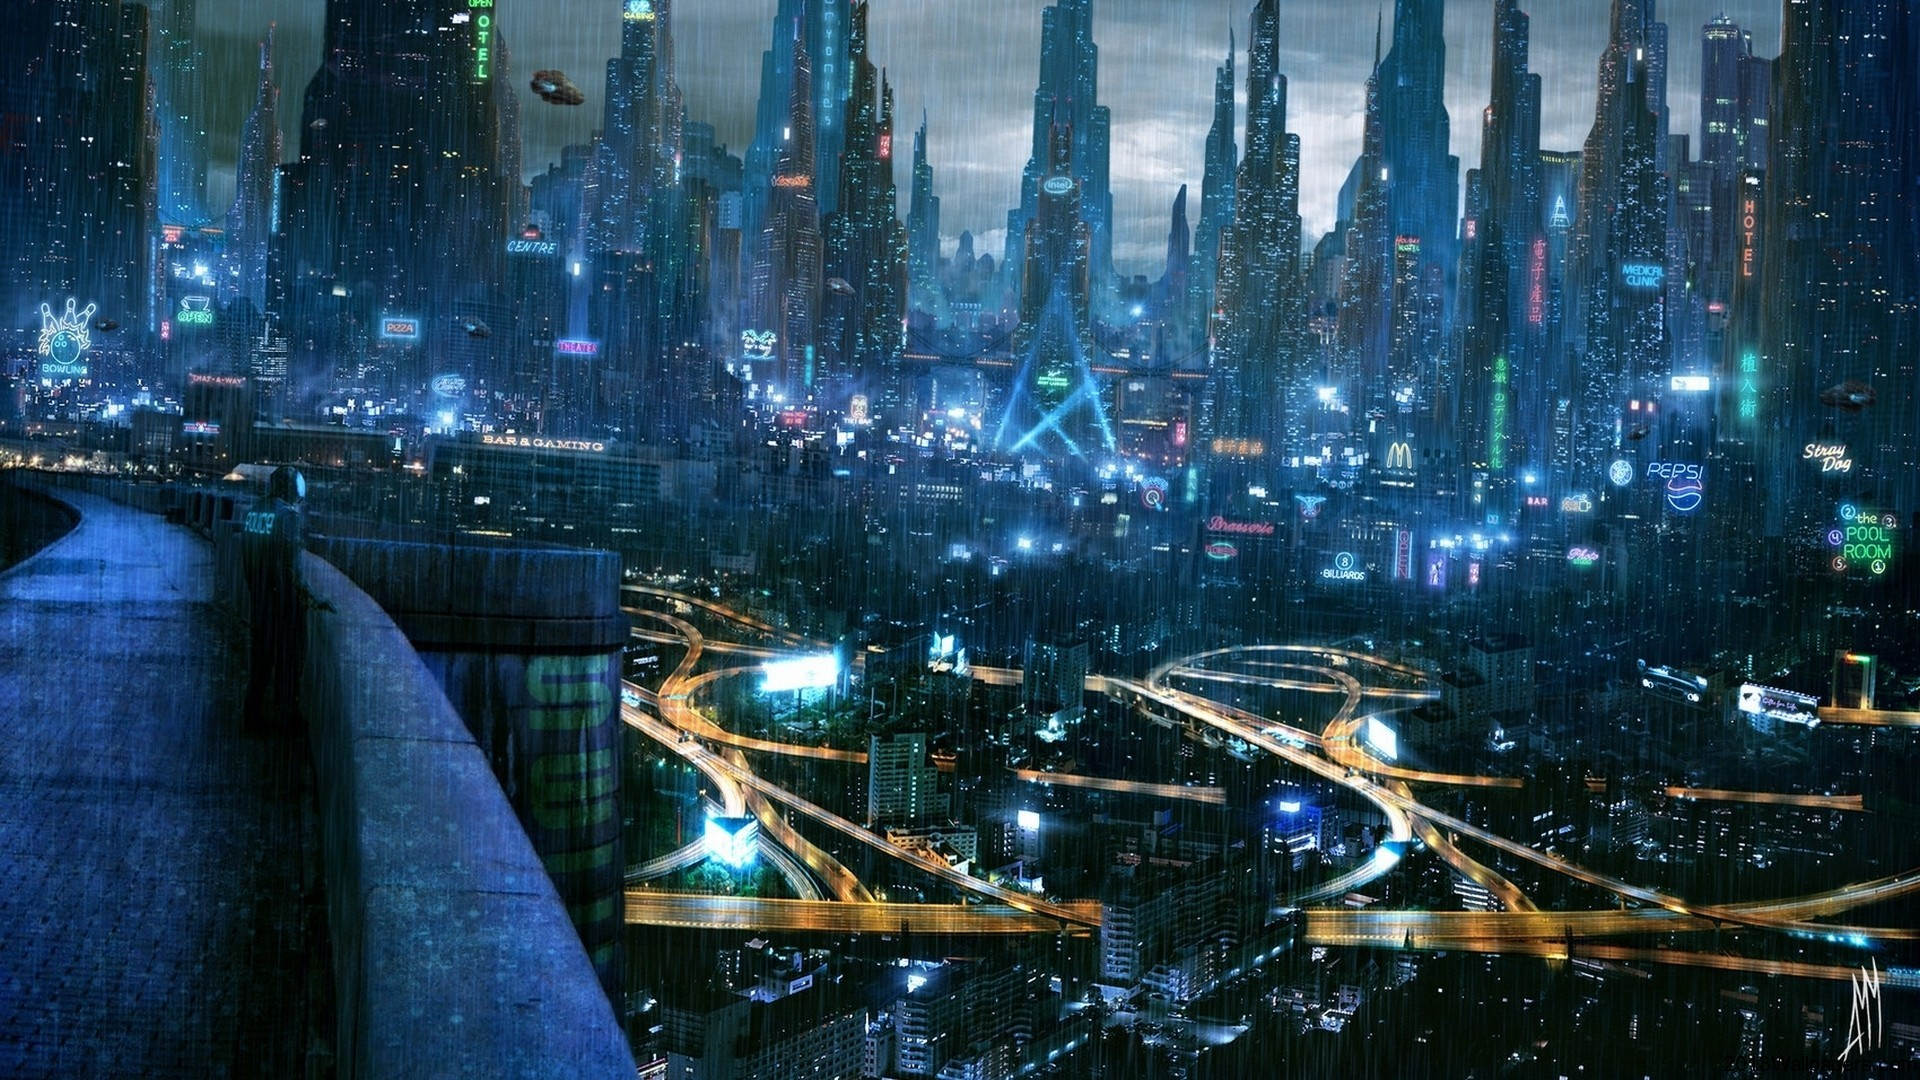 future city wallpaper